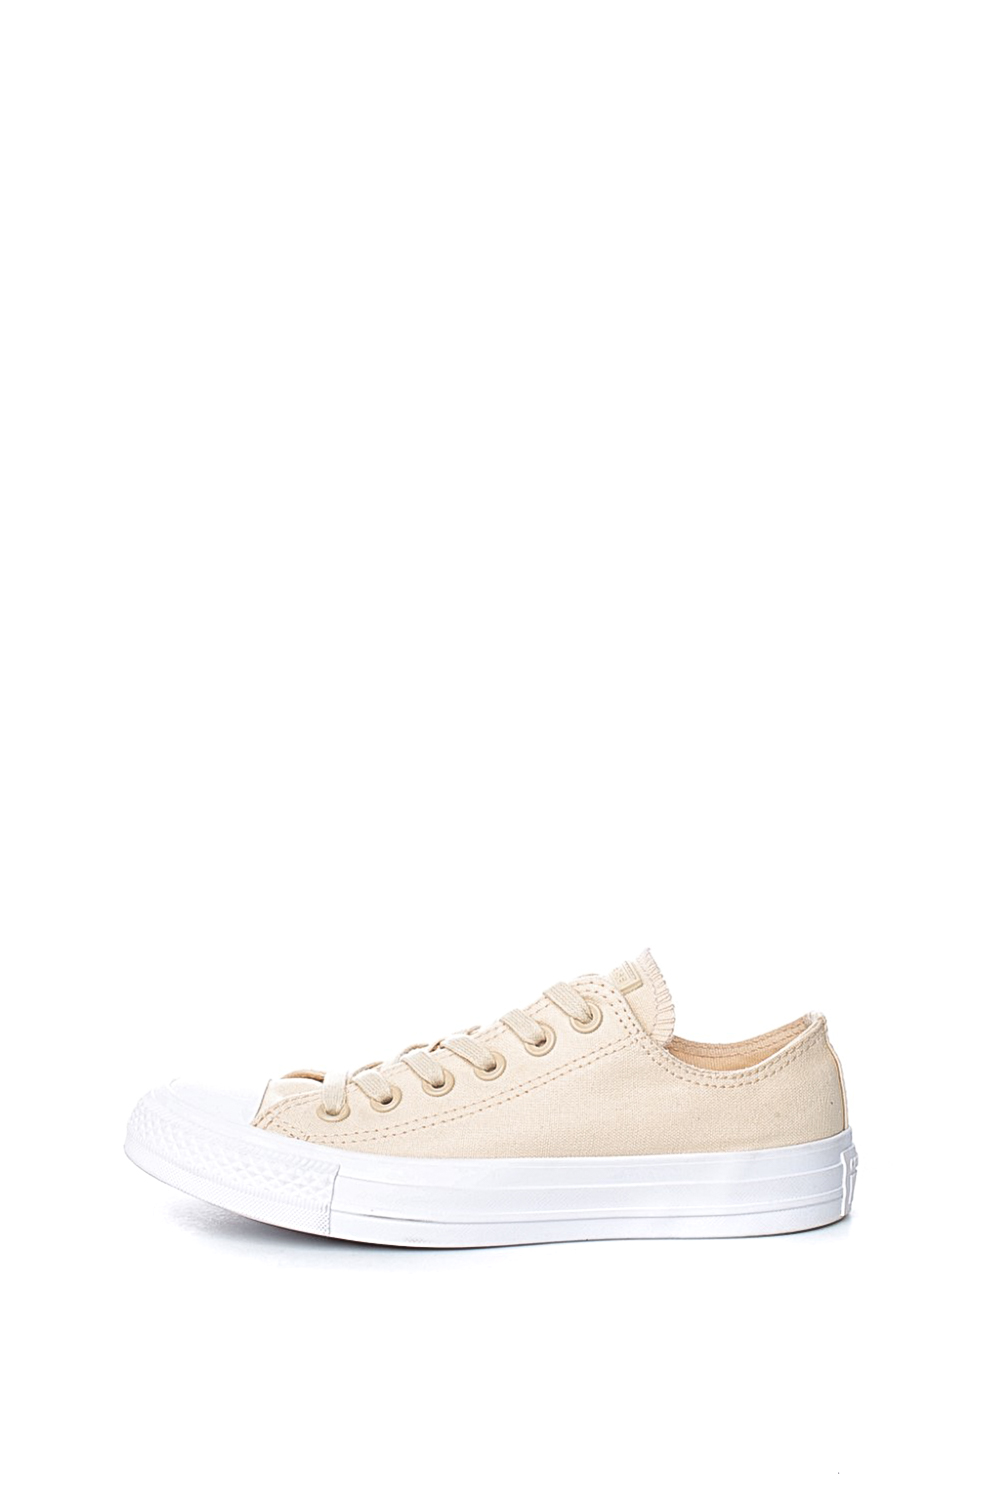 b8a5d69a6dd Γυναικεία Sneakers - Roe Shoes Collection